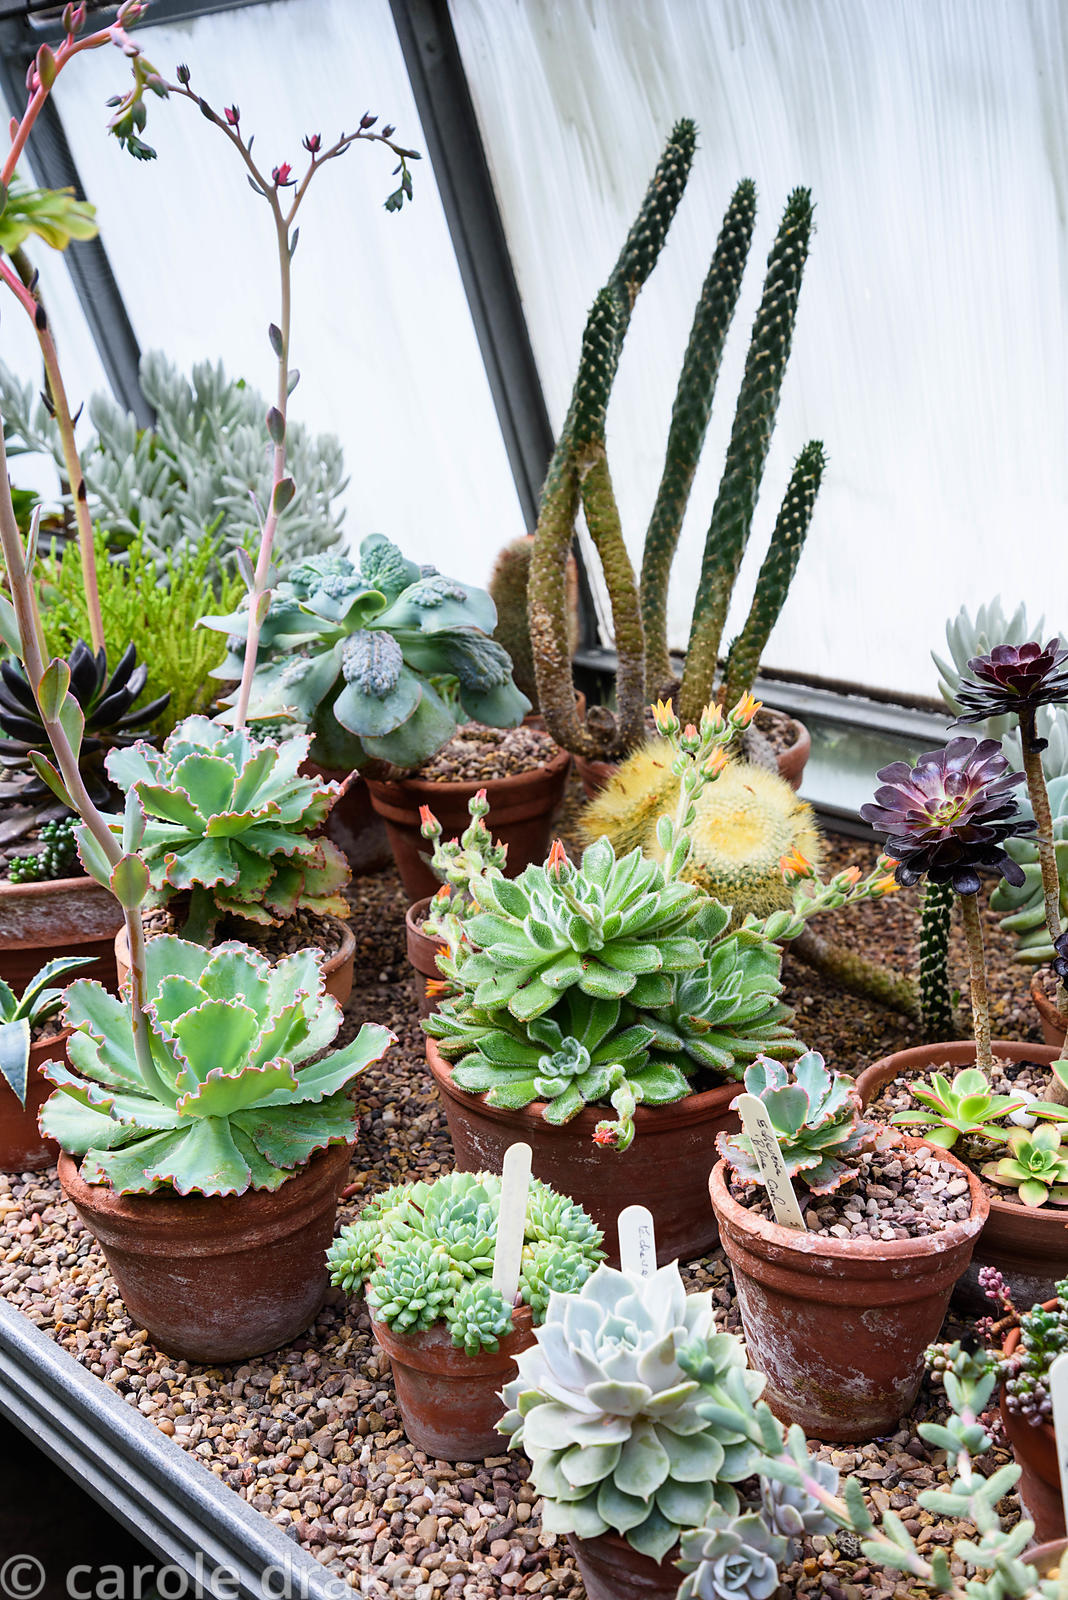 Greenhouse staging covered with pots of cacti and succulents at York Gate Garden, Adel in July